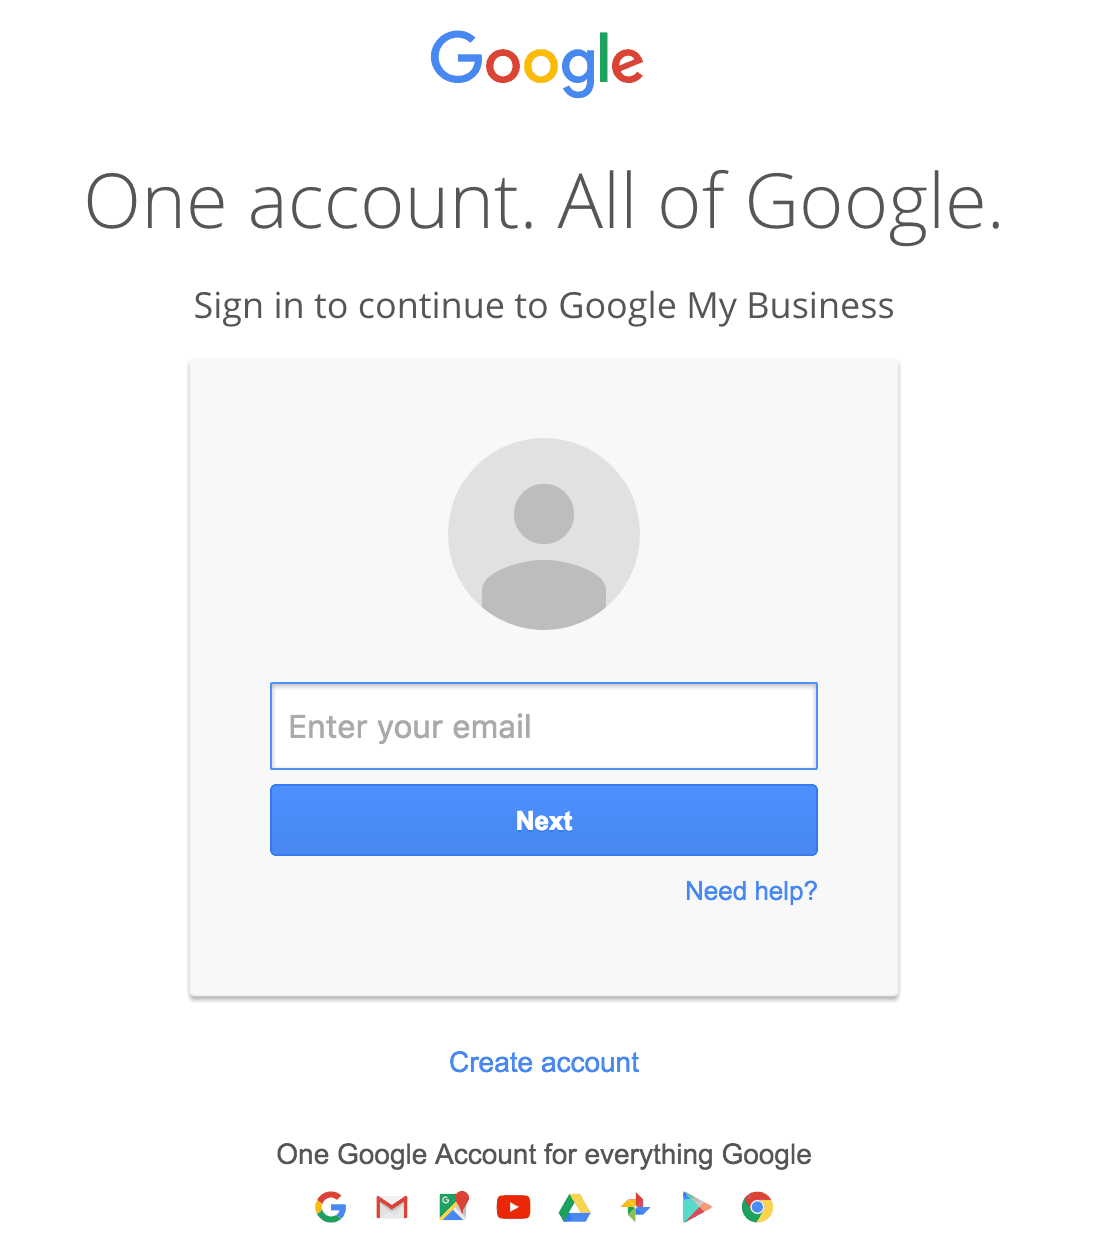 Create a Google Account if you don't have one